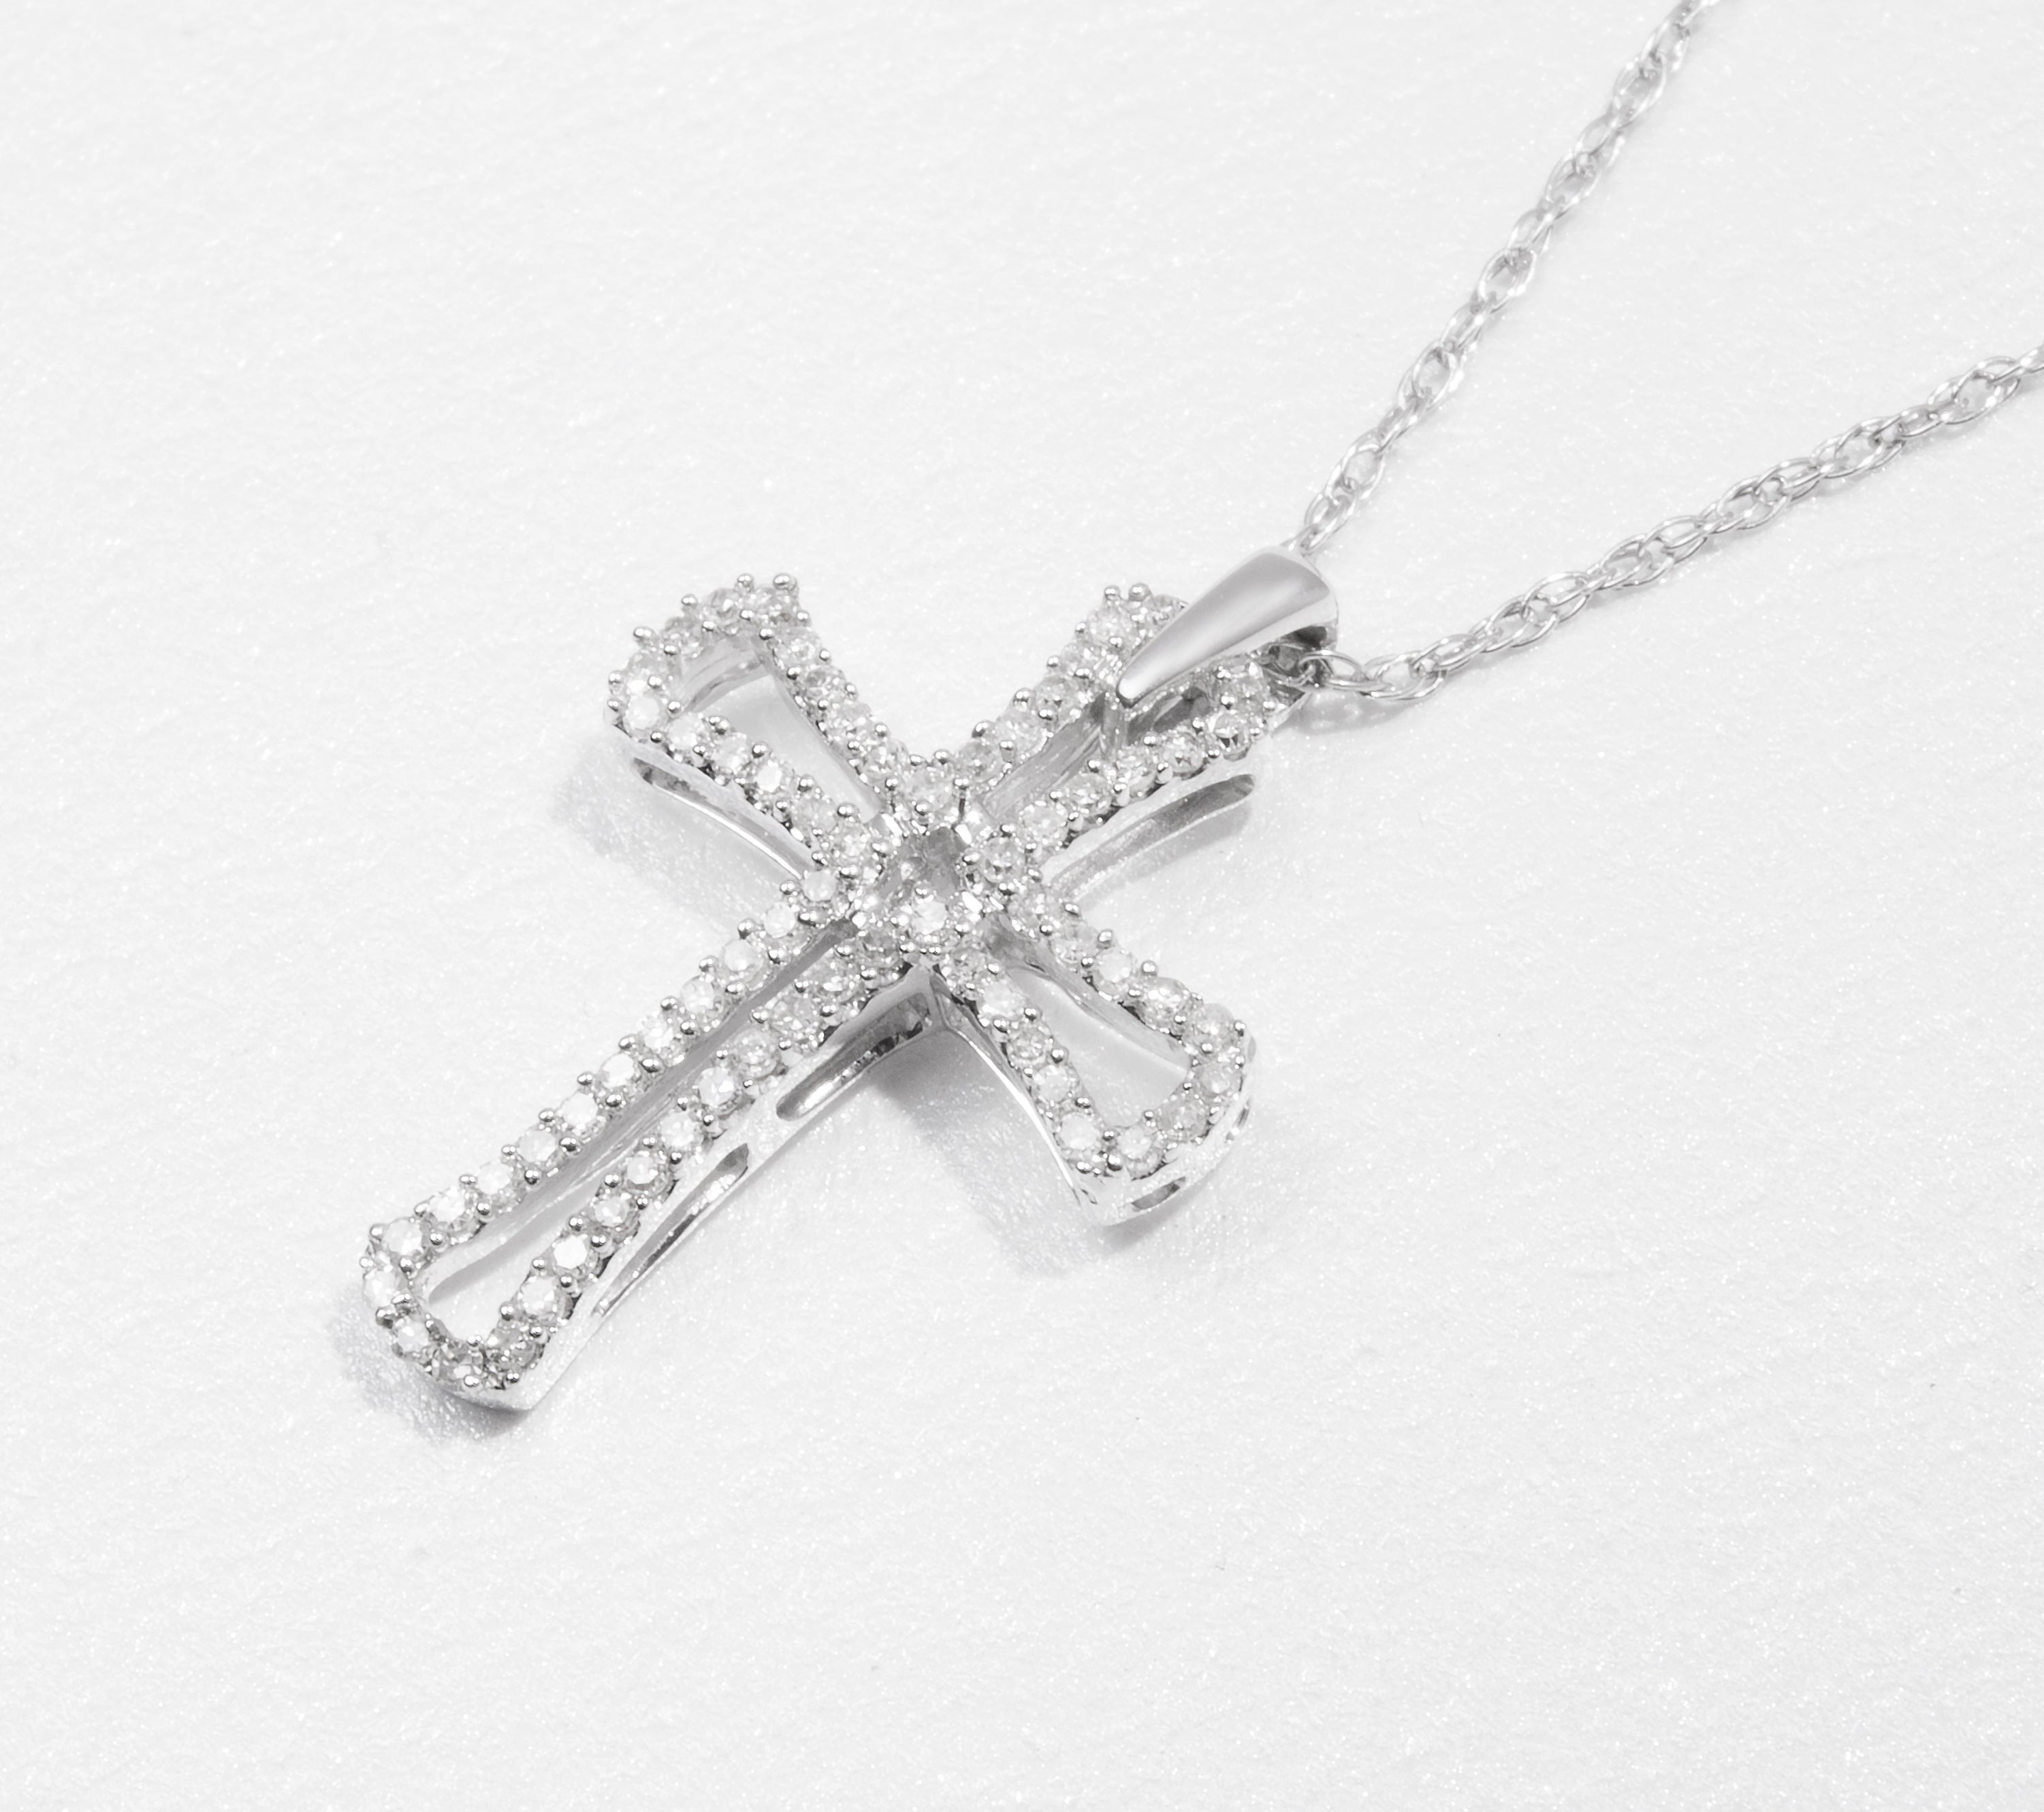 10k white gold diamond cross ring 10k white gold diamond petite 10k white gold diamond cross ring 10k white gold diamond petite cross necklace bundle aloadofball Image collections